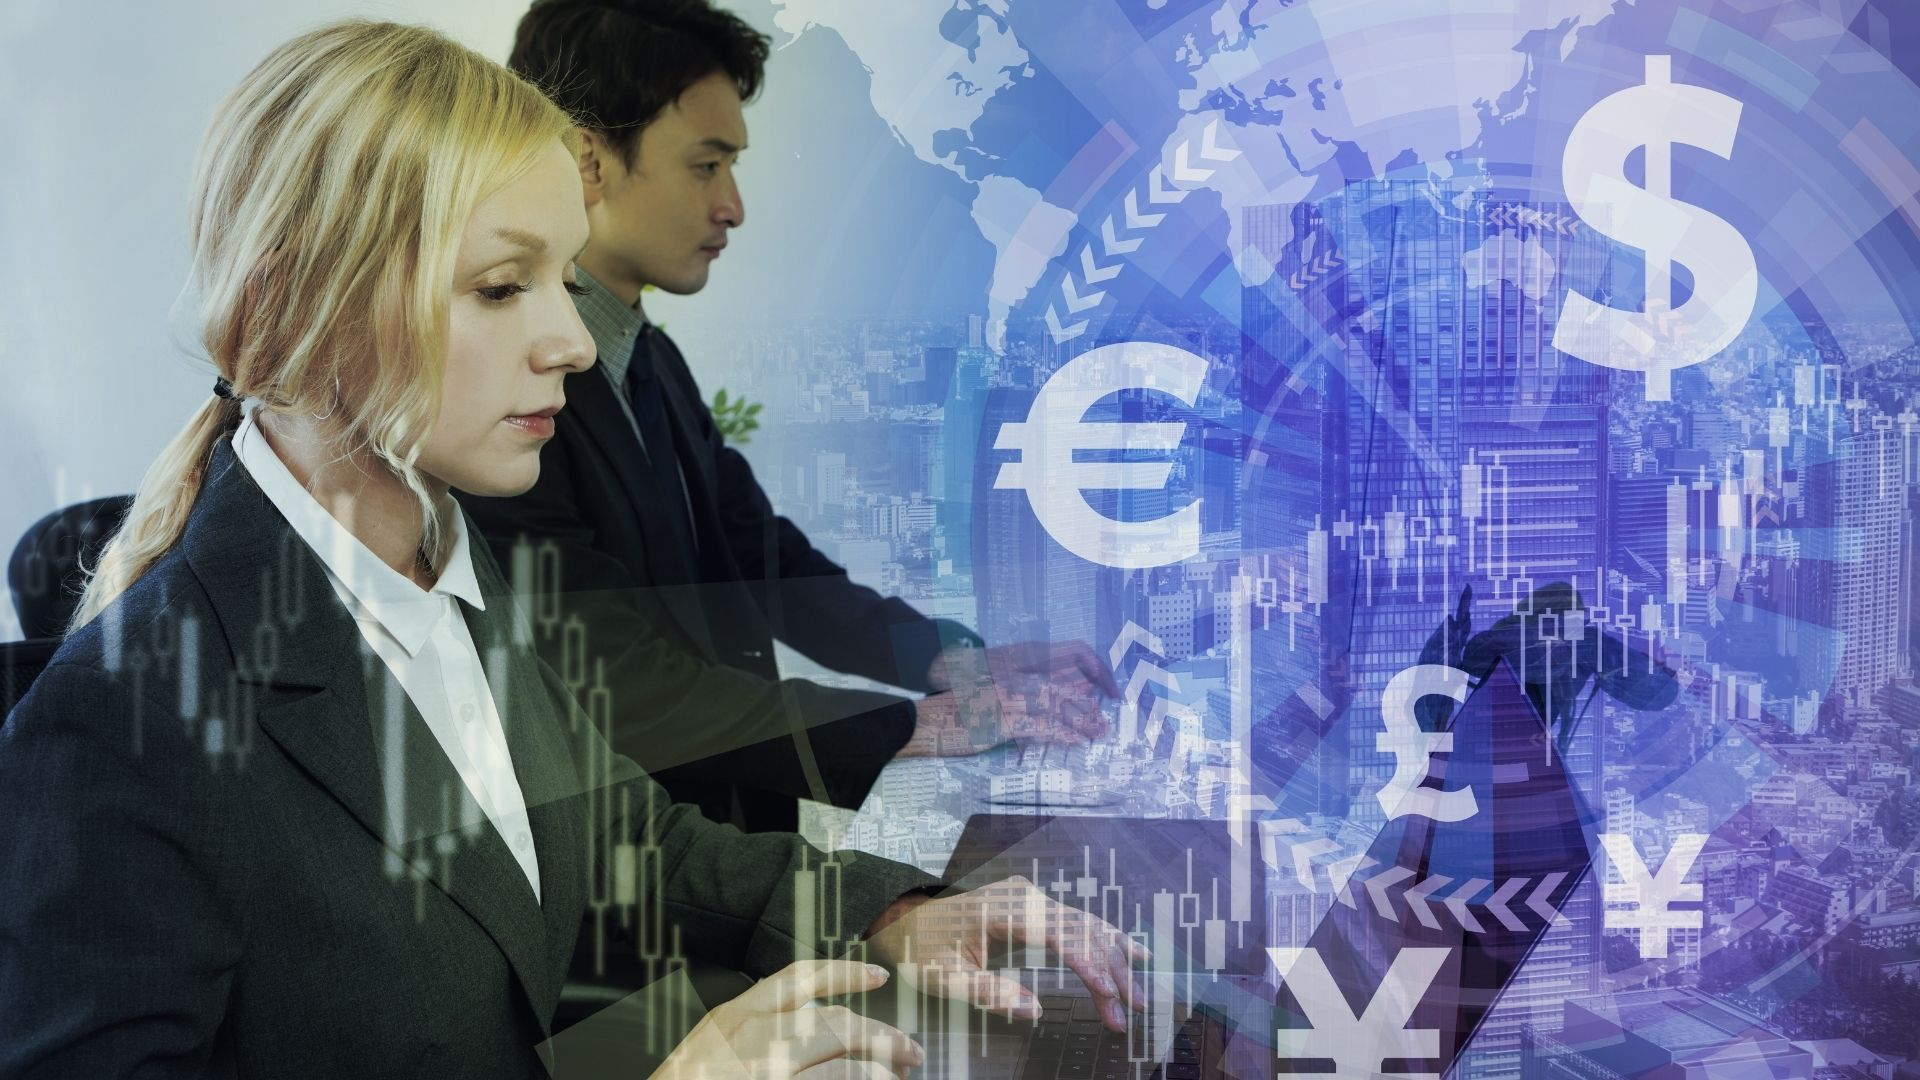 Financial Services must lead the charge in the re-skilling revolution